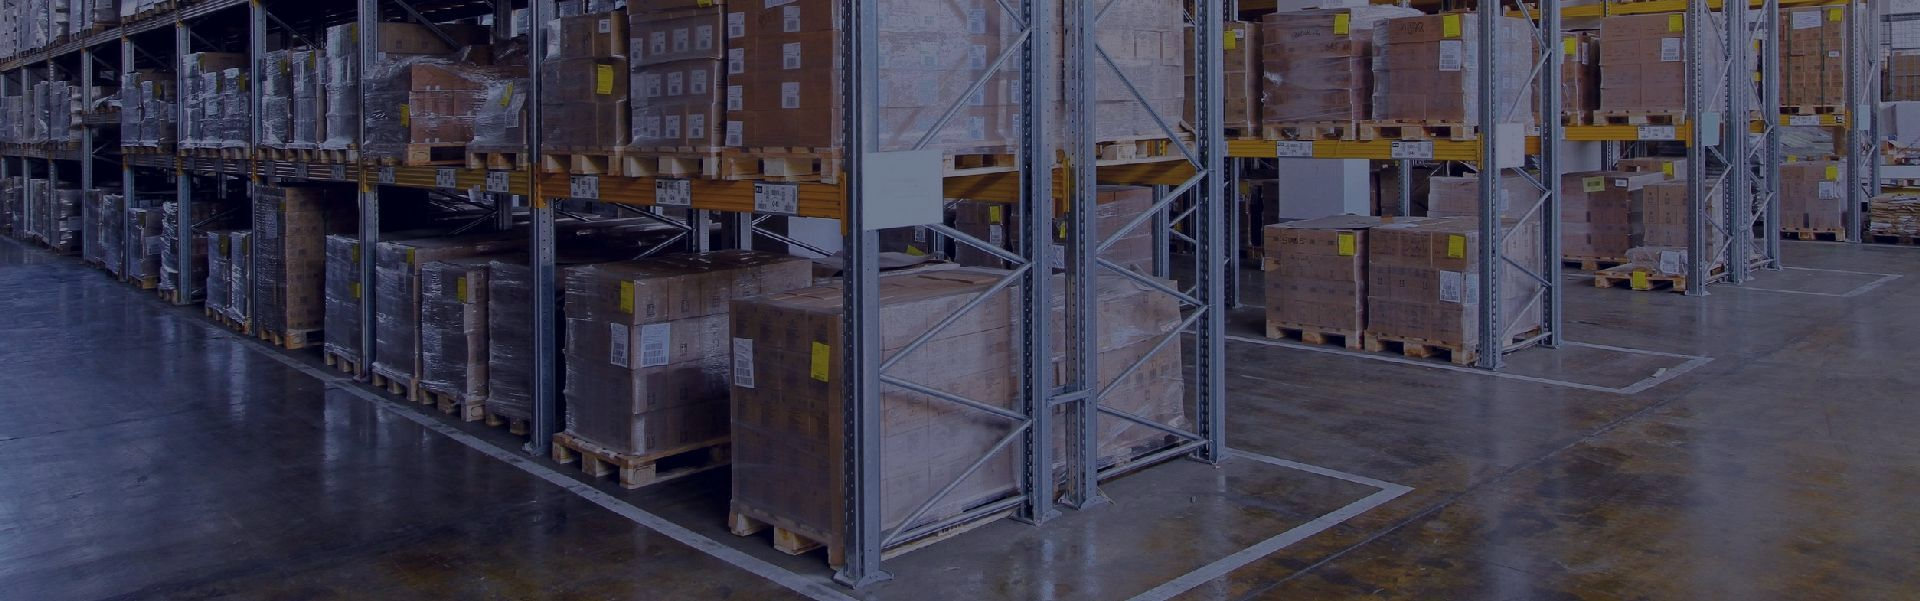 Complex logistics services under one roof